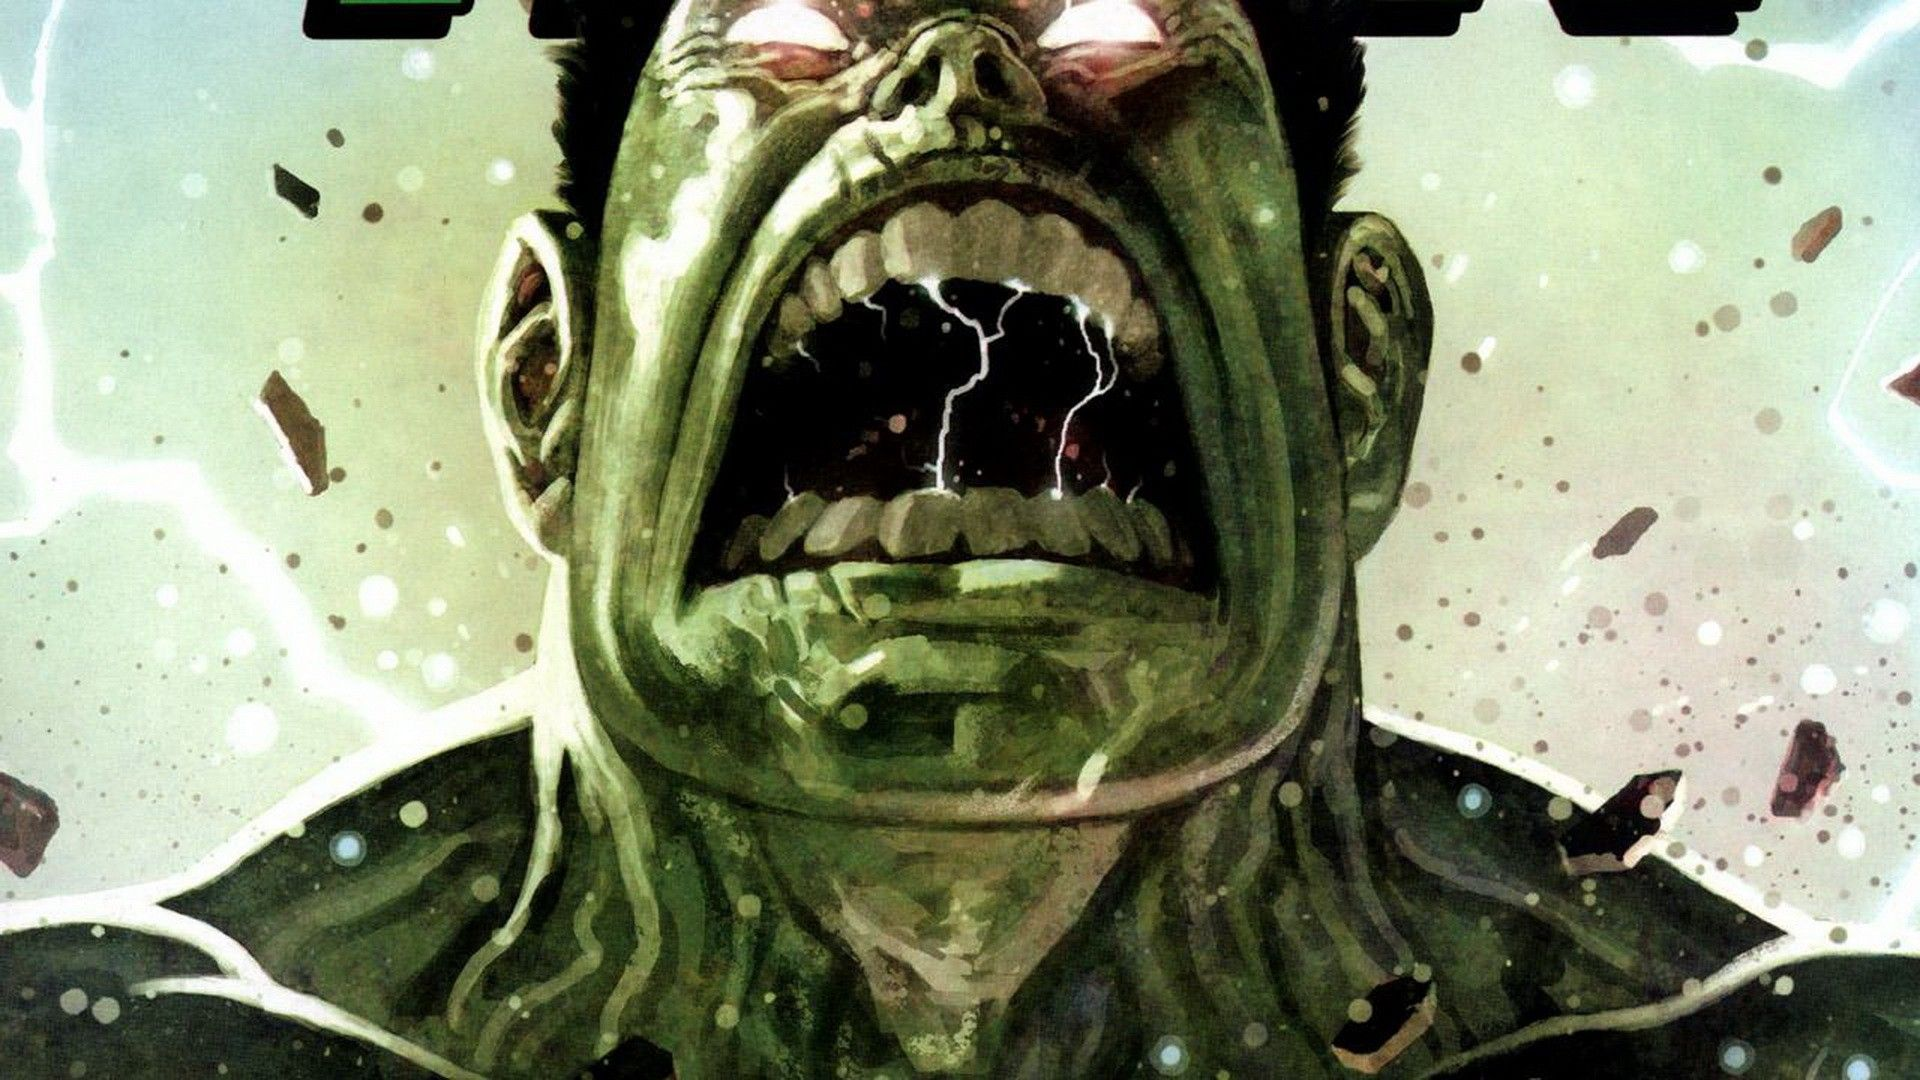 Hd wallpaper hulk - Hulk Hd Wallpapers A Comic Created By Stan Lee A Hero And Monster